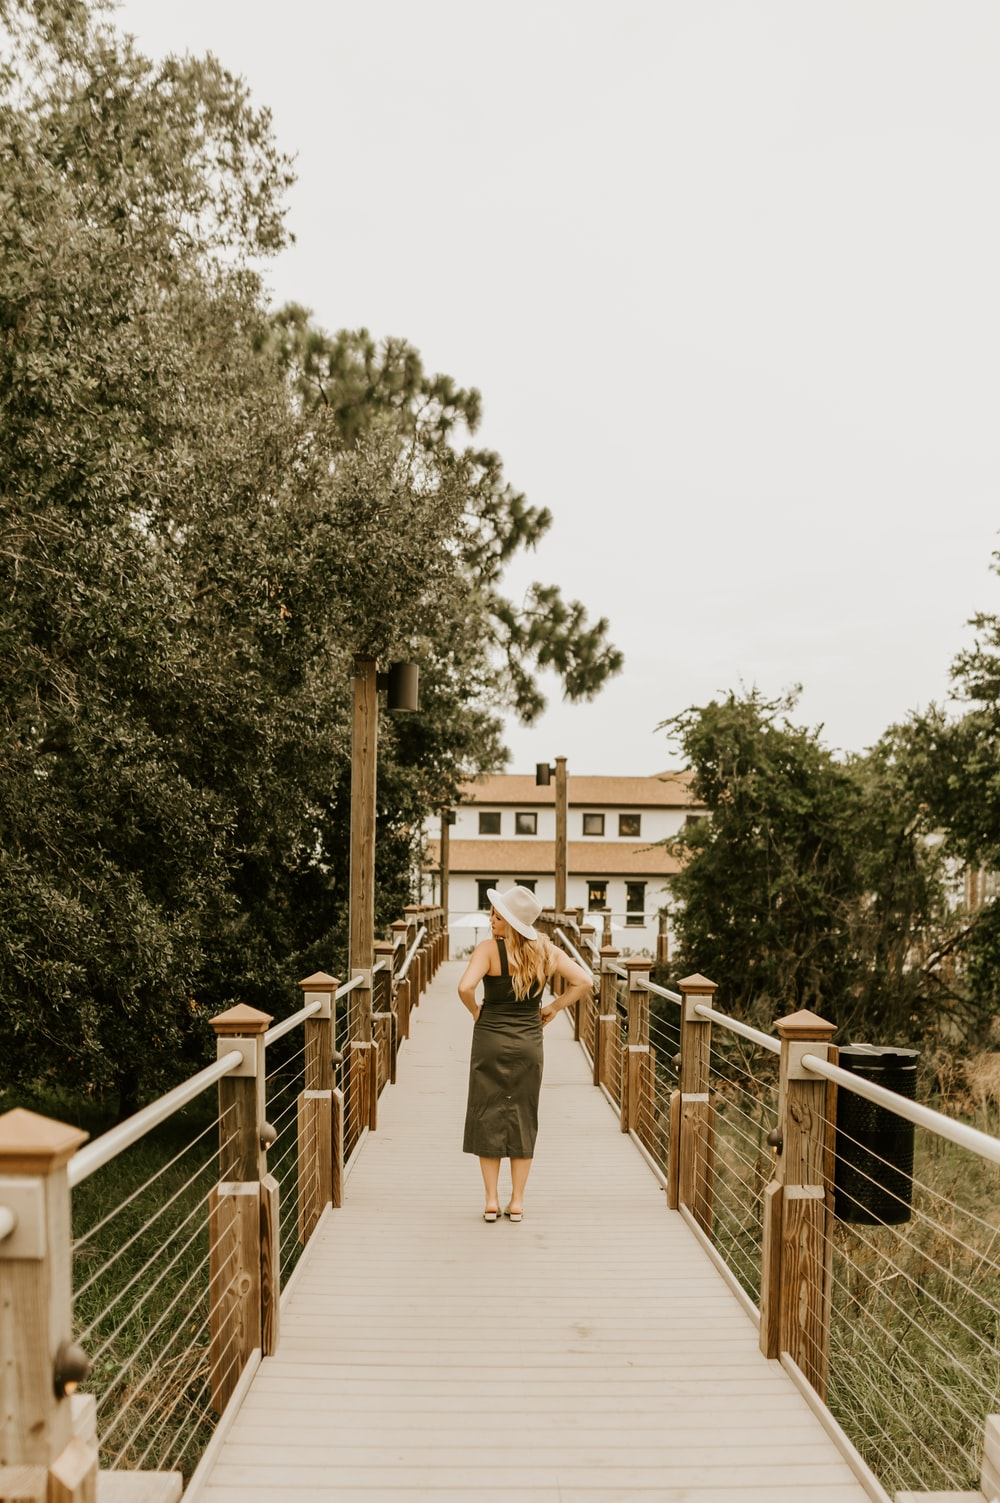 woman in brown coat walking on bridge during daytime